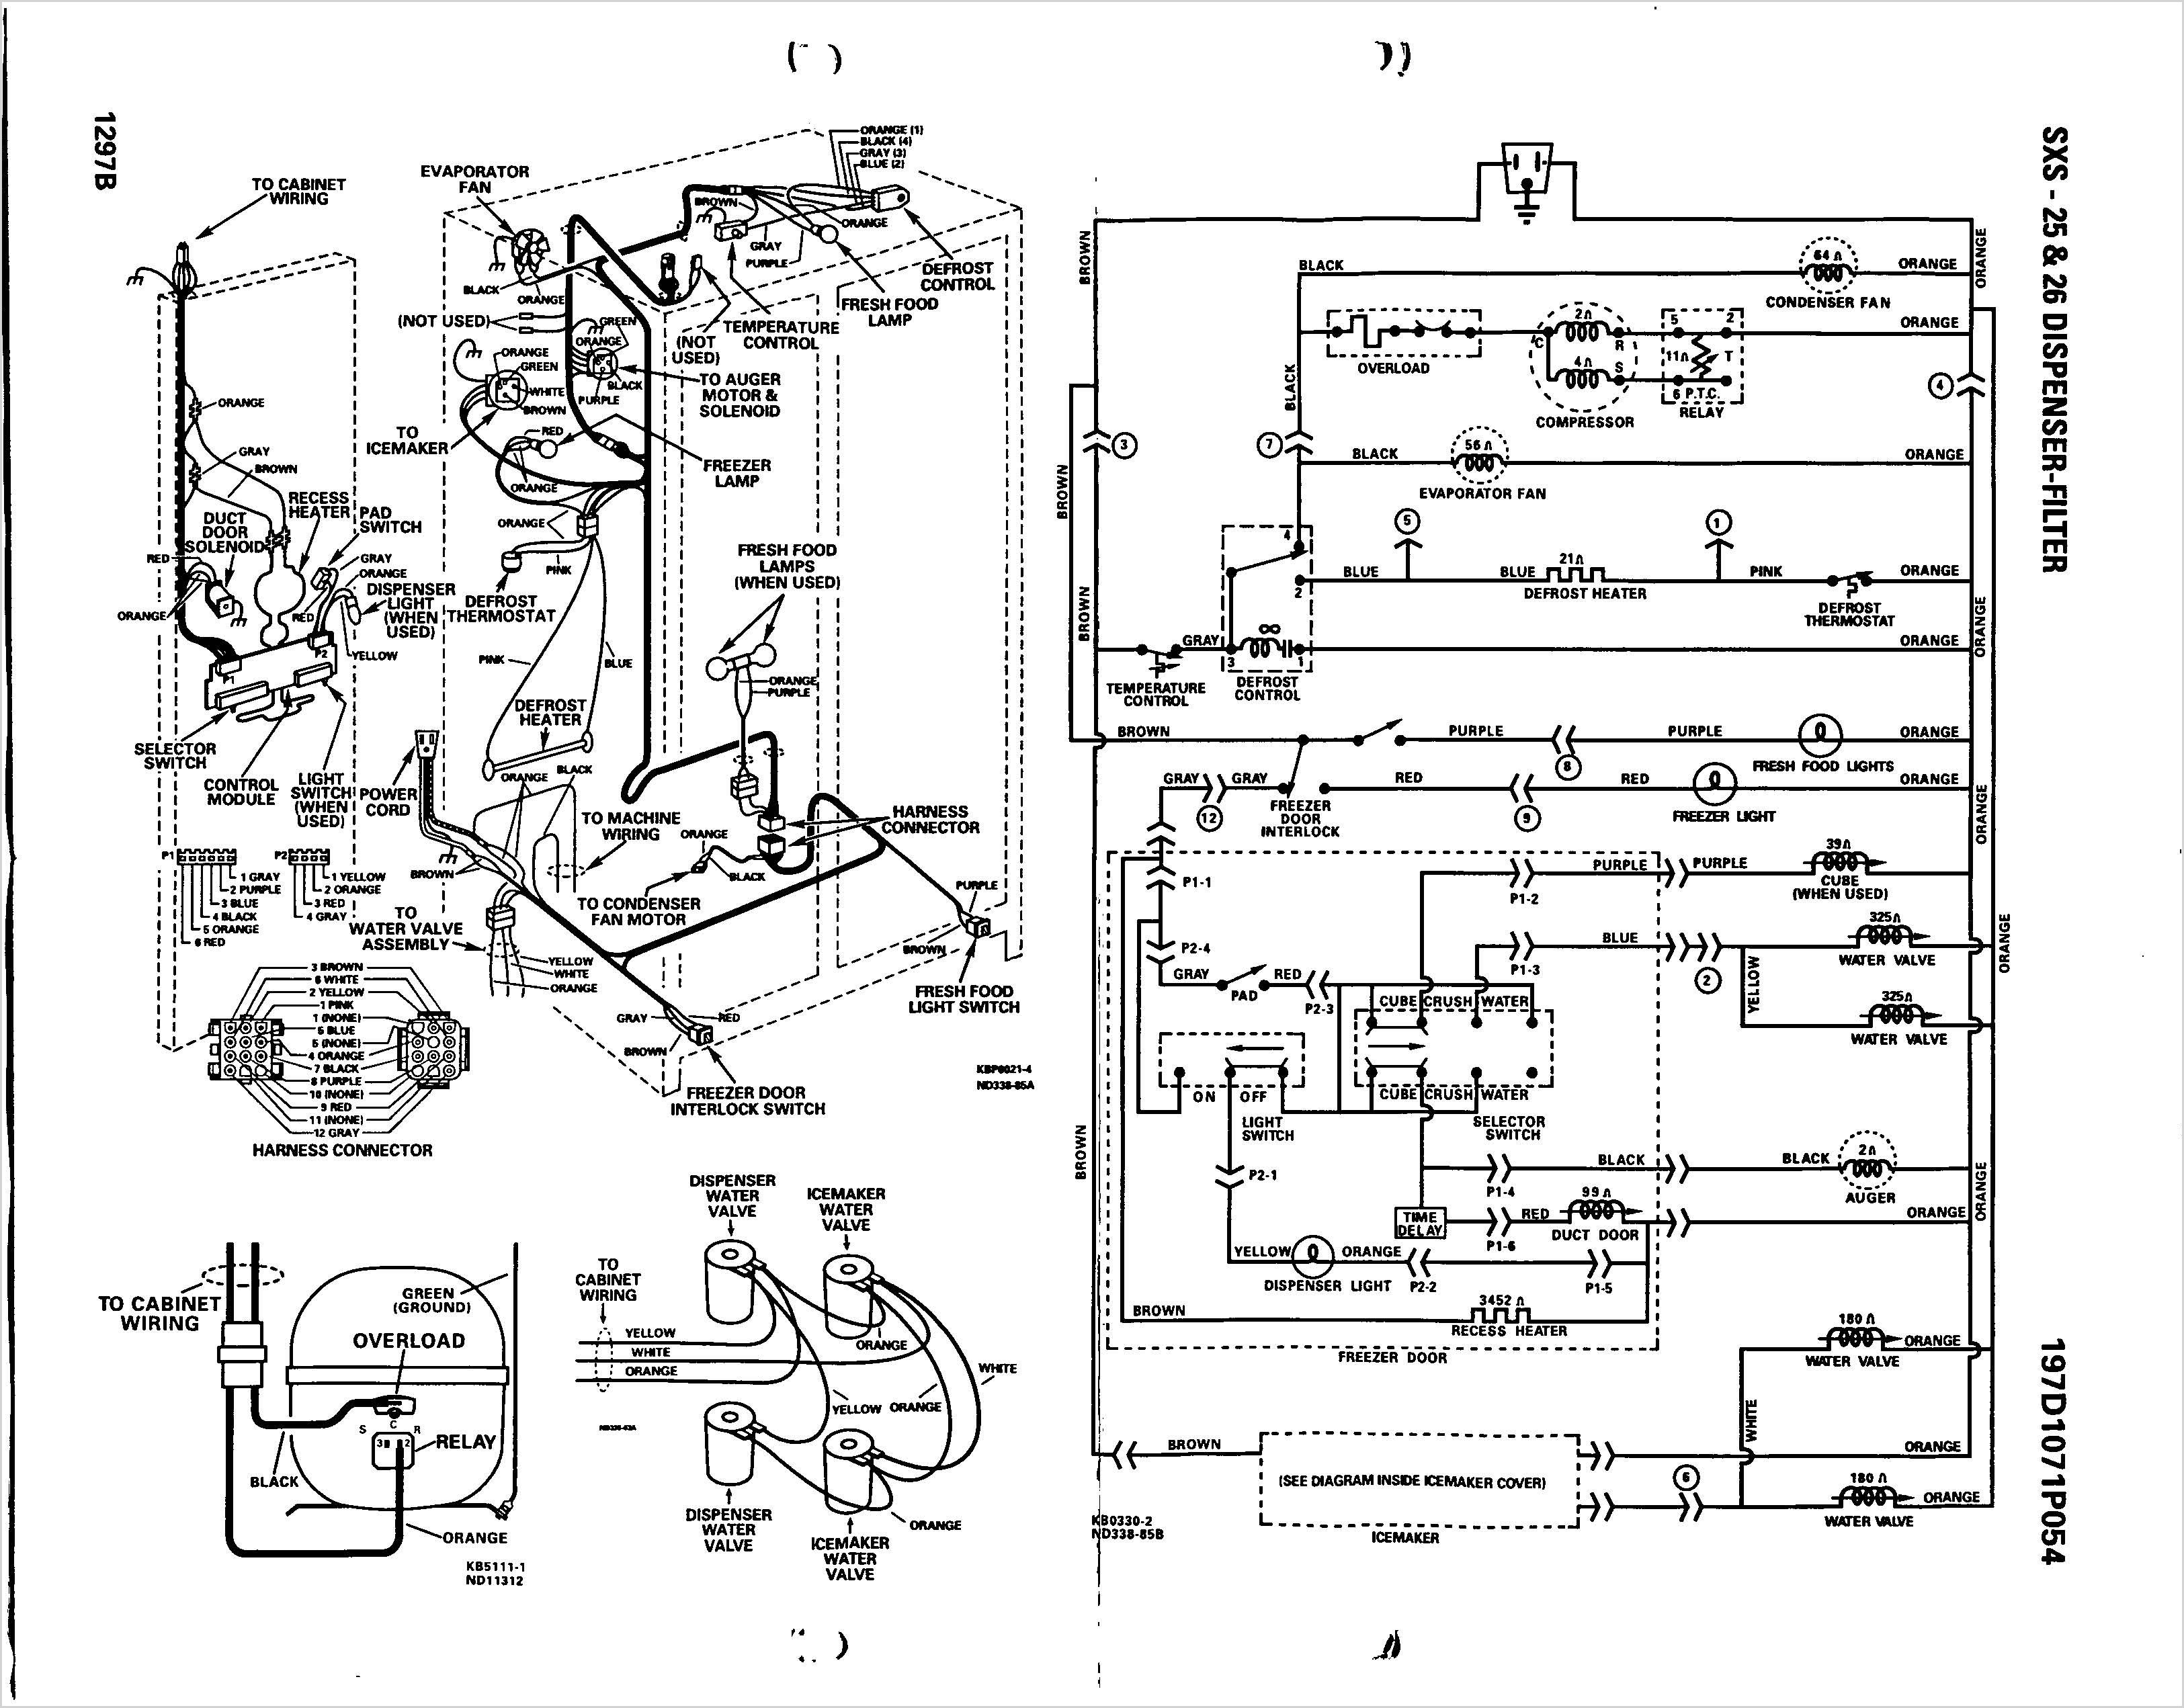 pilz pnoz x7 wiring diagram Download-ge stove wiring diagram Download Ge Refrigerator Wiring Diagram Ice Maker Luxury Circuit Ge Profile DOWNLOAD Wiring Diagram 12-n